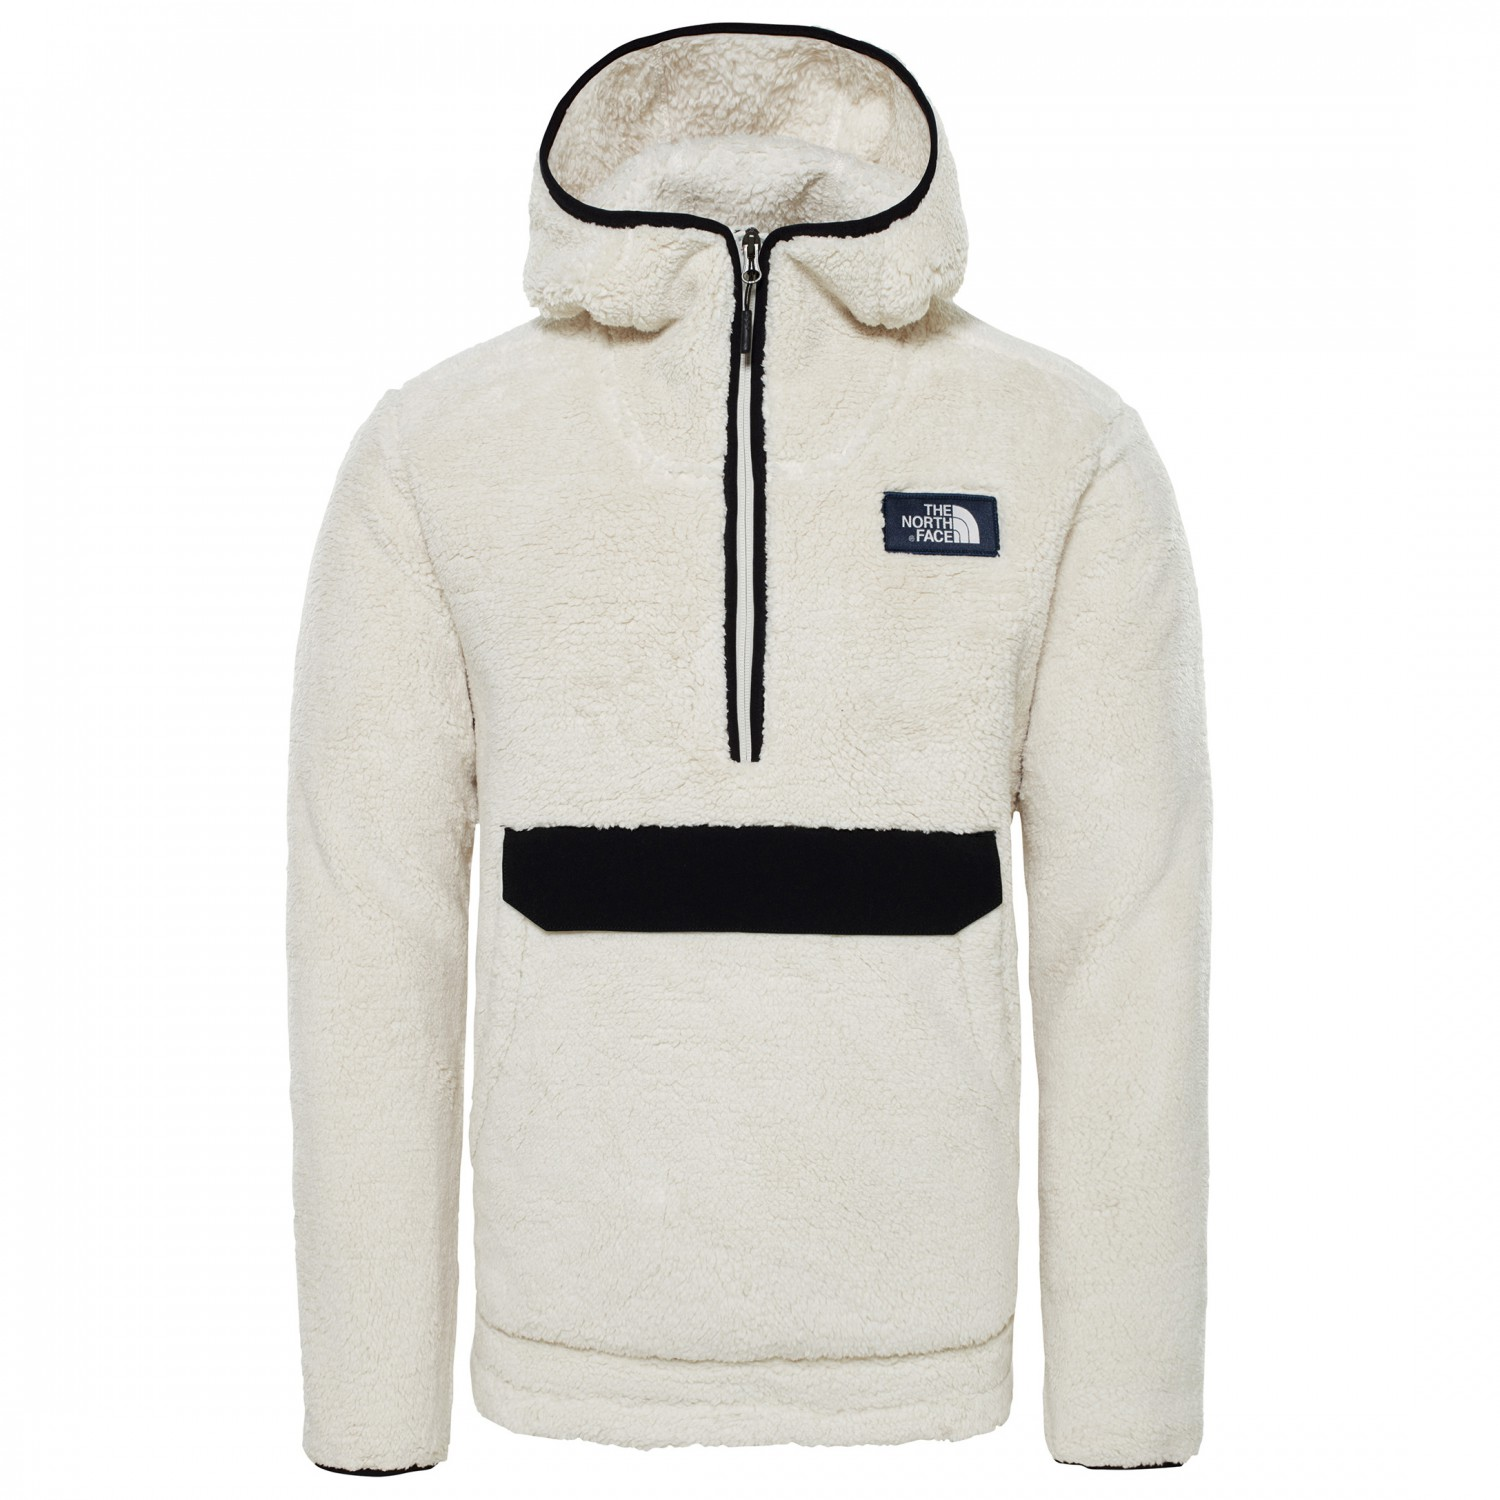 fb597ff1f4a9 The North Face Campshire Pullover Hoodie - Fleece Jumper Men s ...